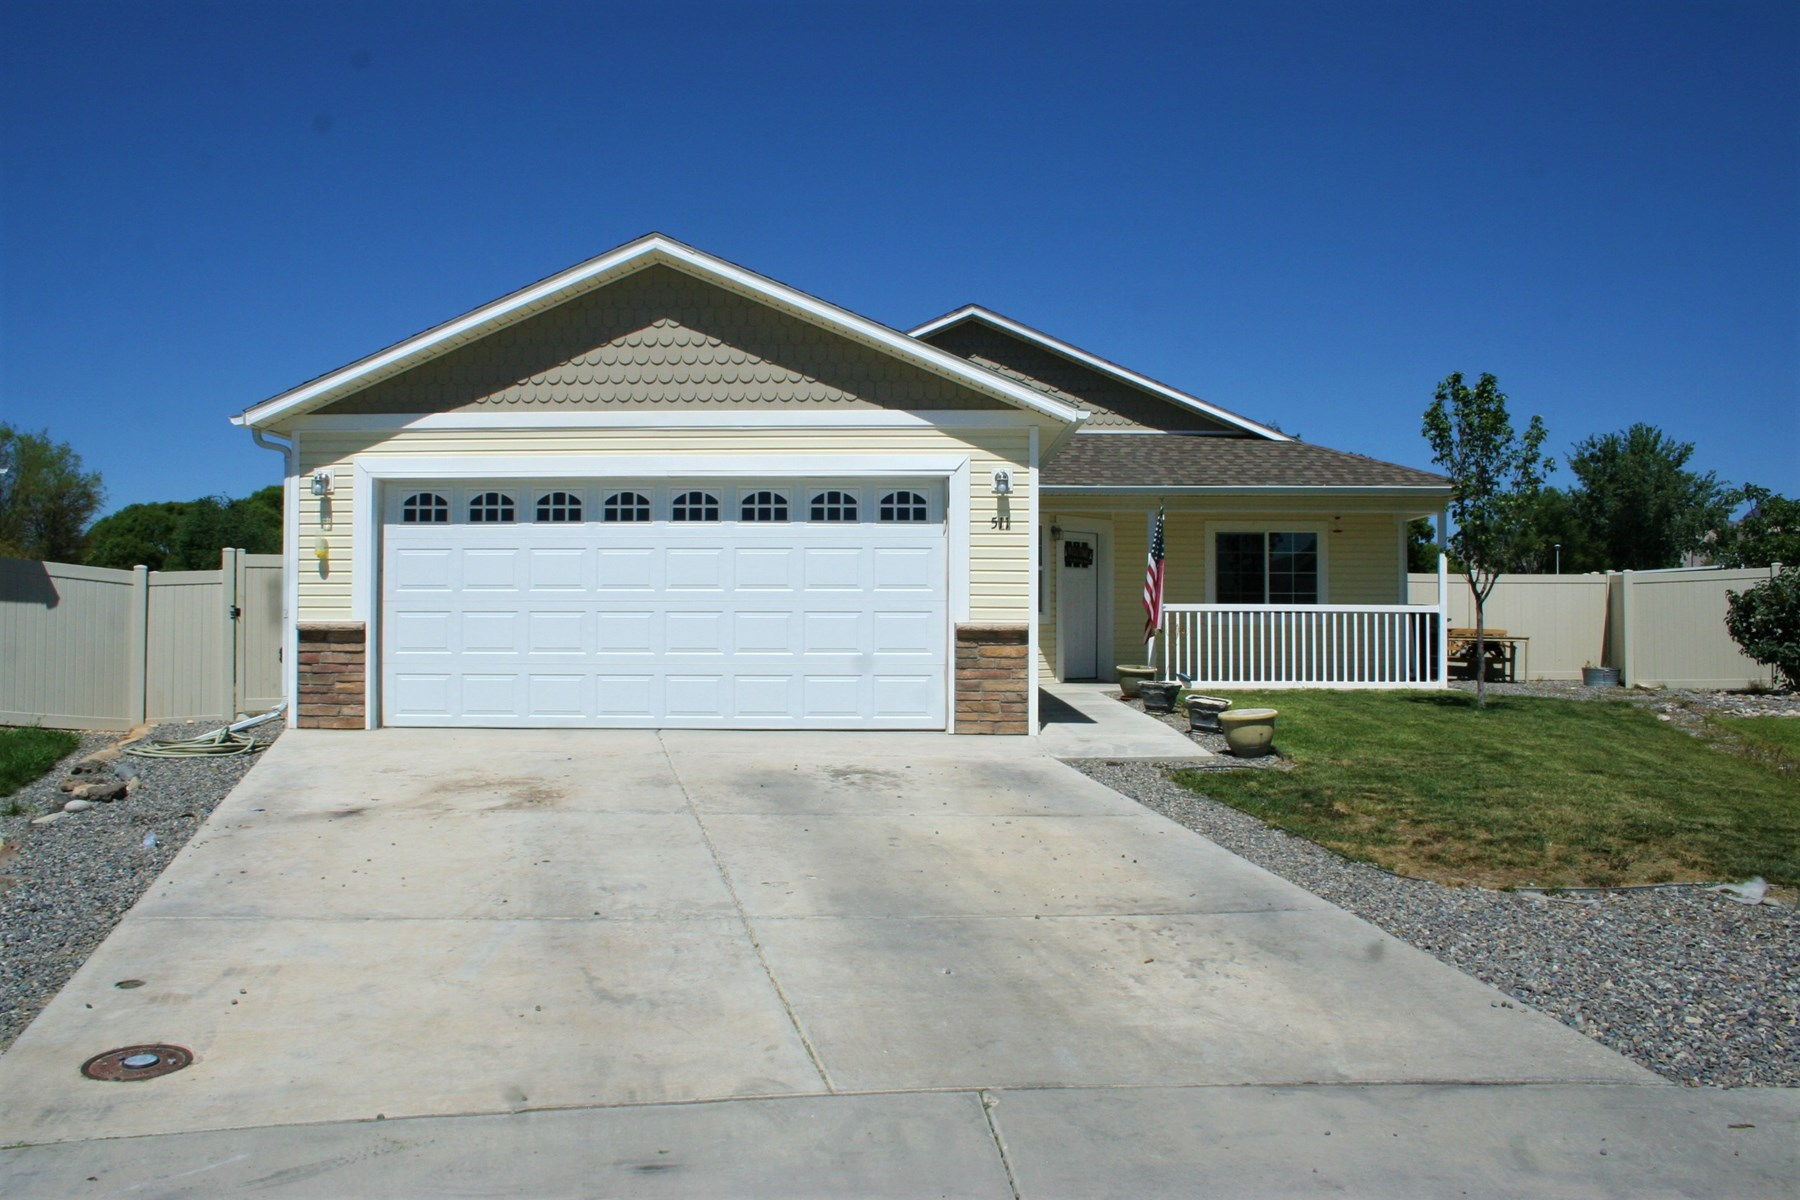 Home For Sale In Grand Junction Colorado Energy Star Home